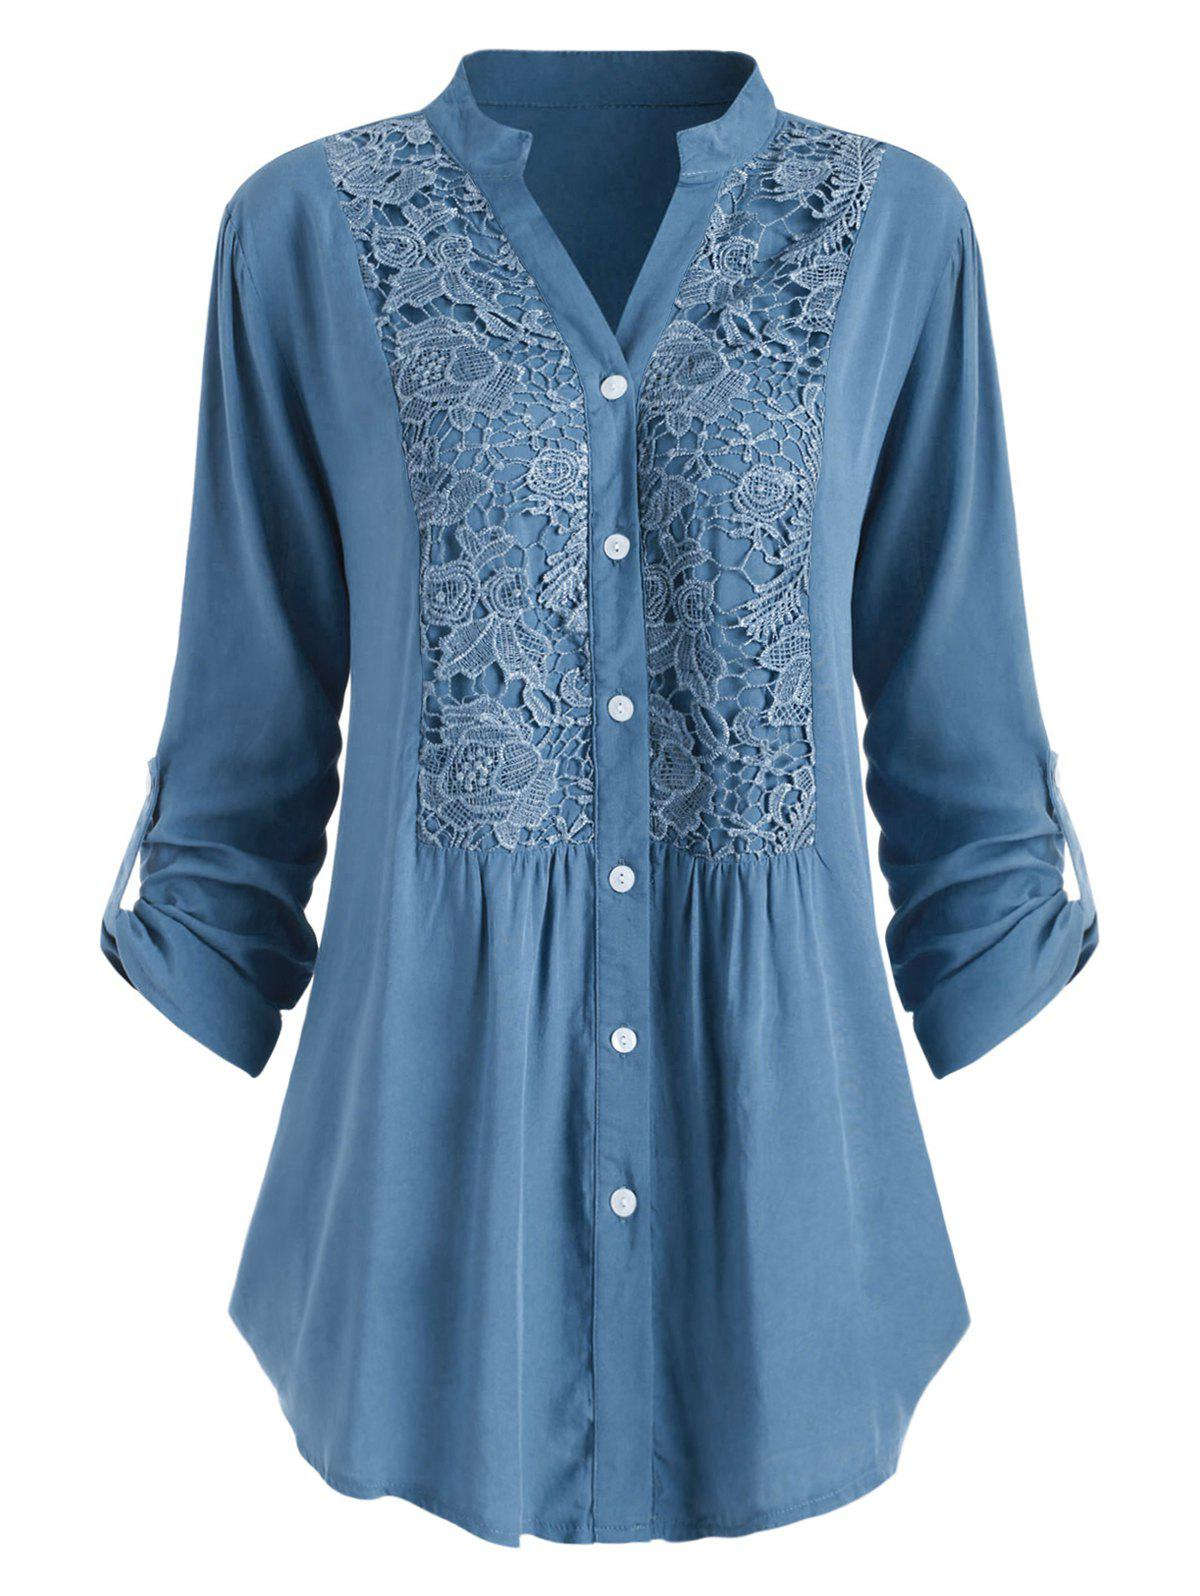 Shop Plus Size Roll Up Sleeve Lace Crochet Shirt